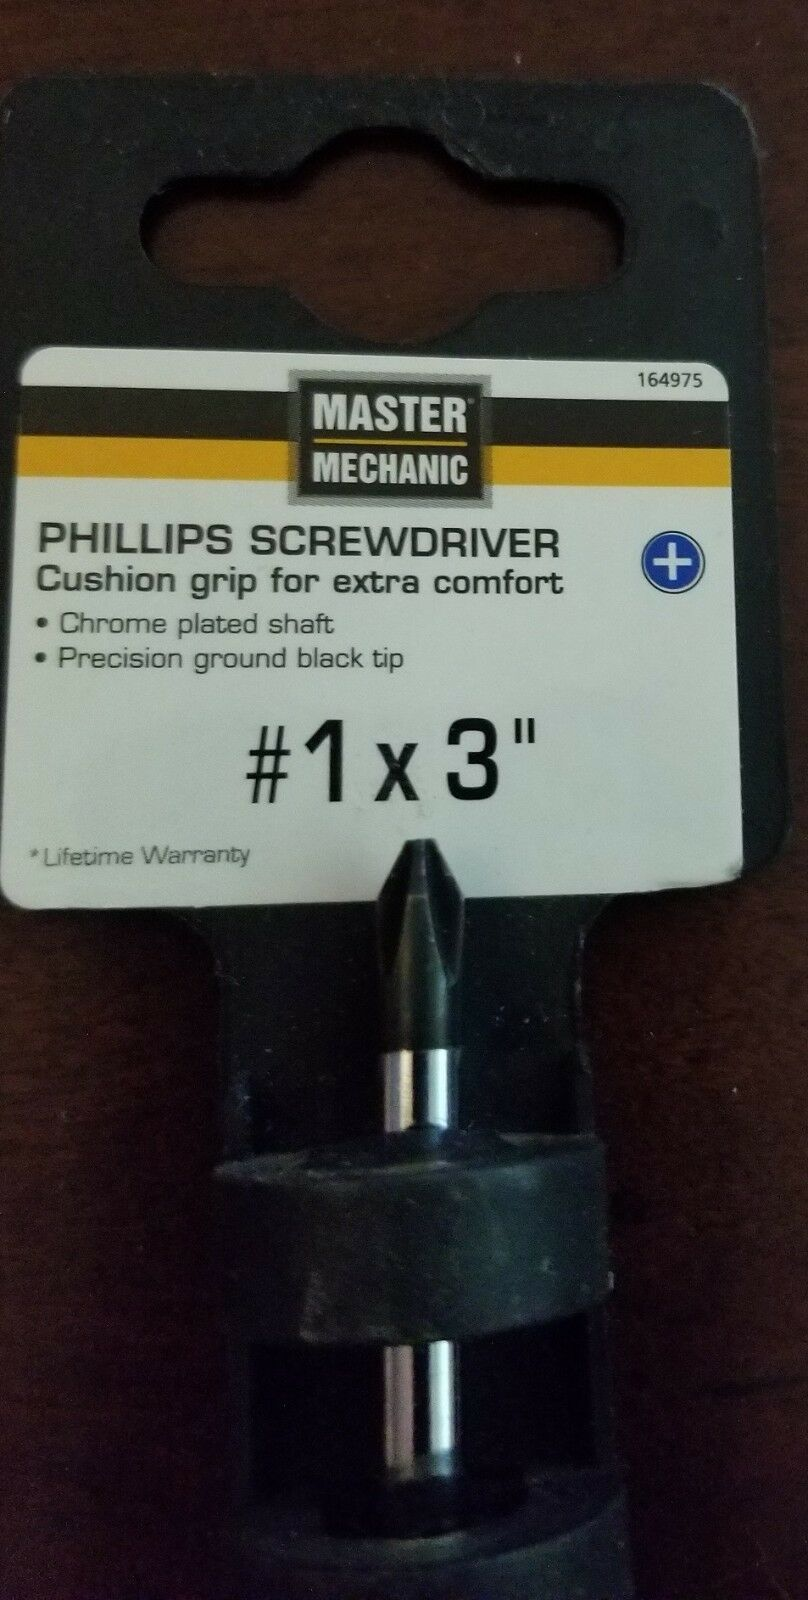 Primary image for MM #1x3 Screwdriver 164975 Master Mechanic